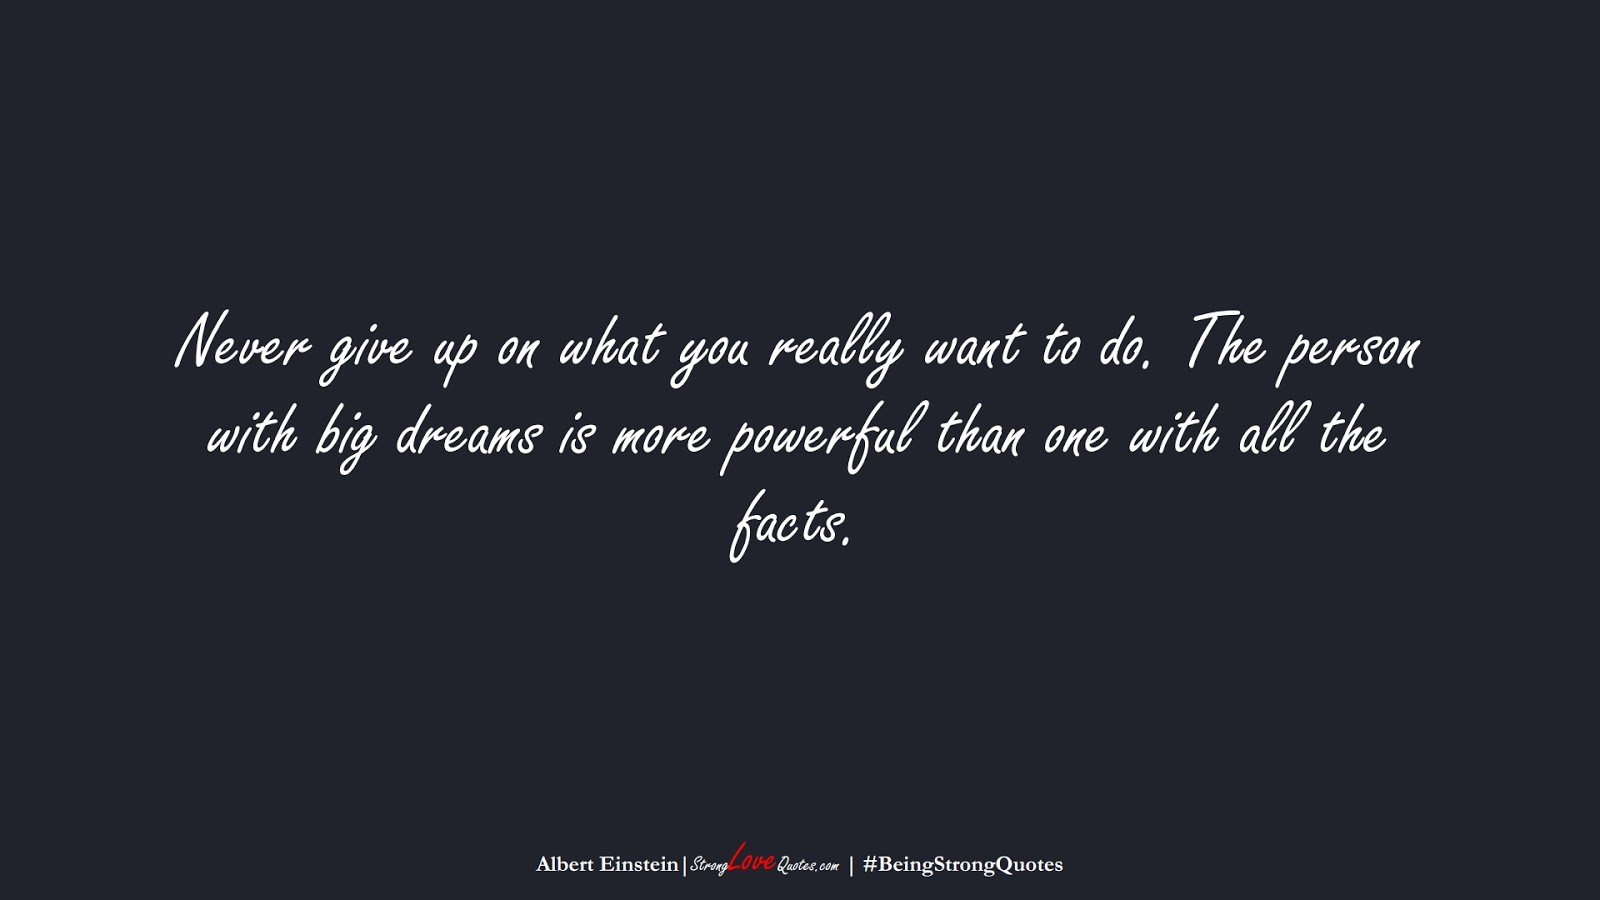 Never give up on what you really want to do. The person with big dreams is more powerful than one with all the facts. (Albert Einstein);  #BeingStrongQuotes